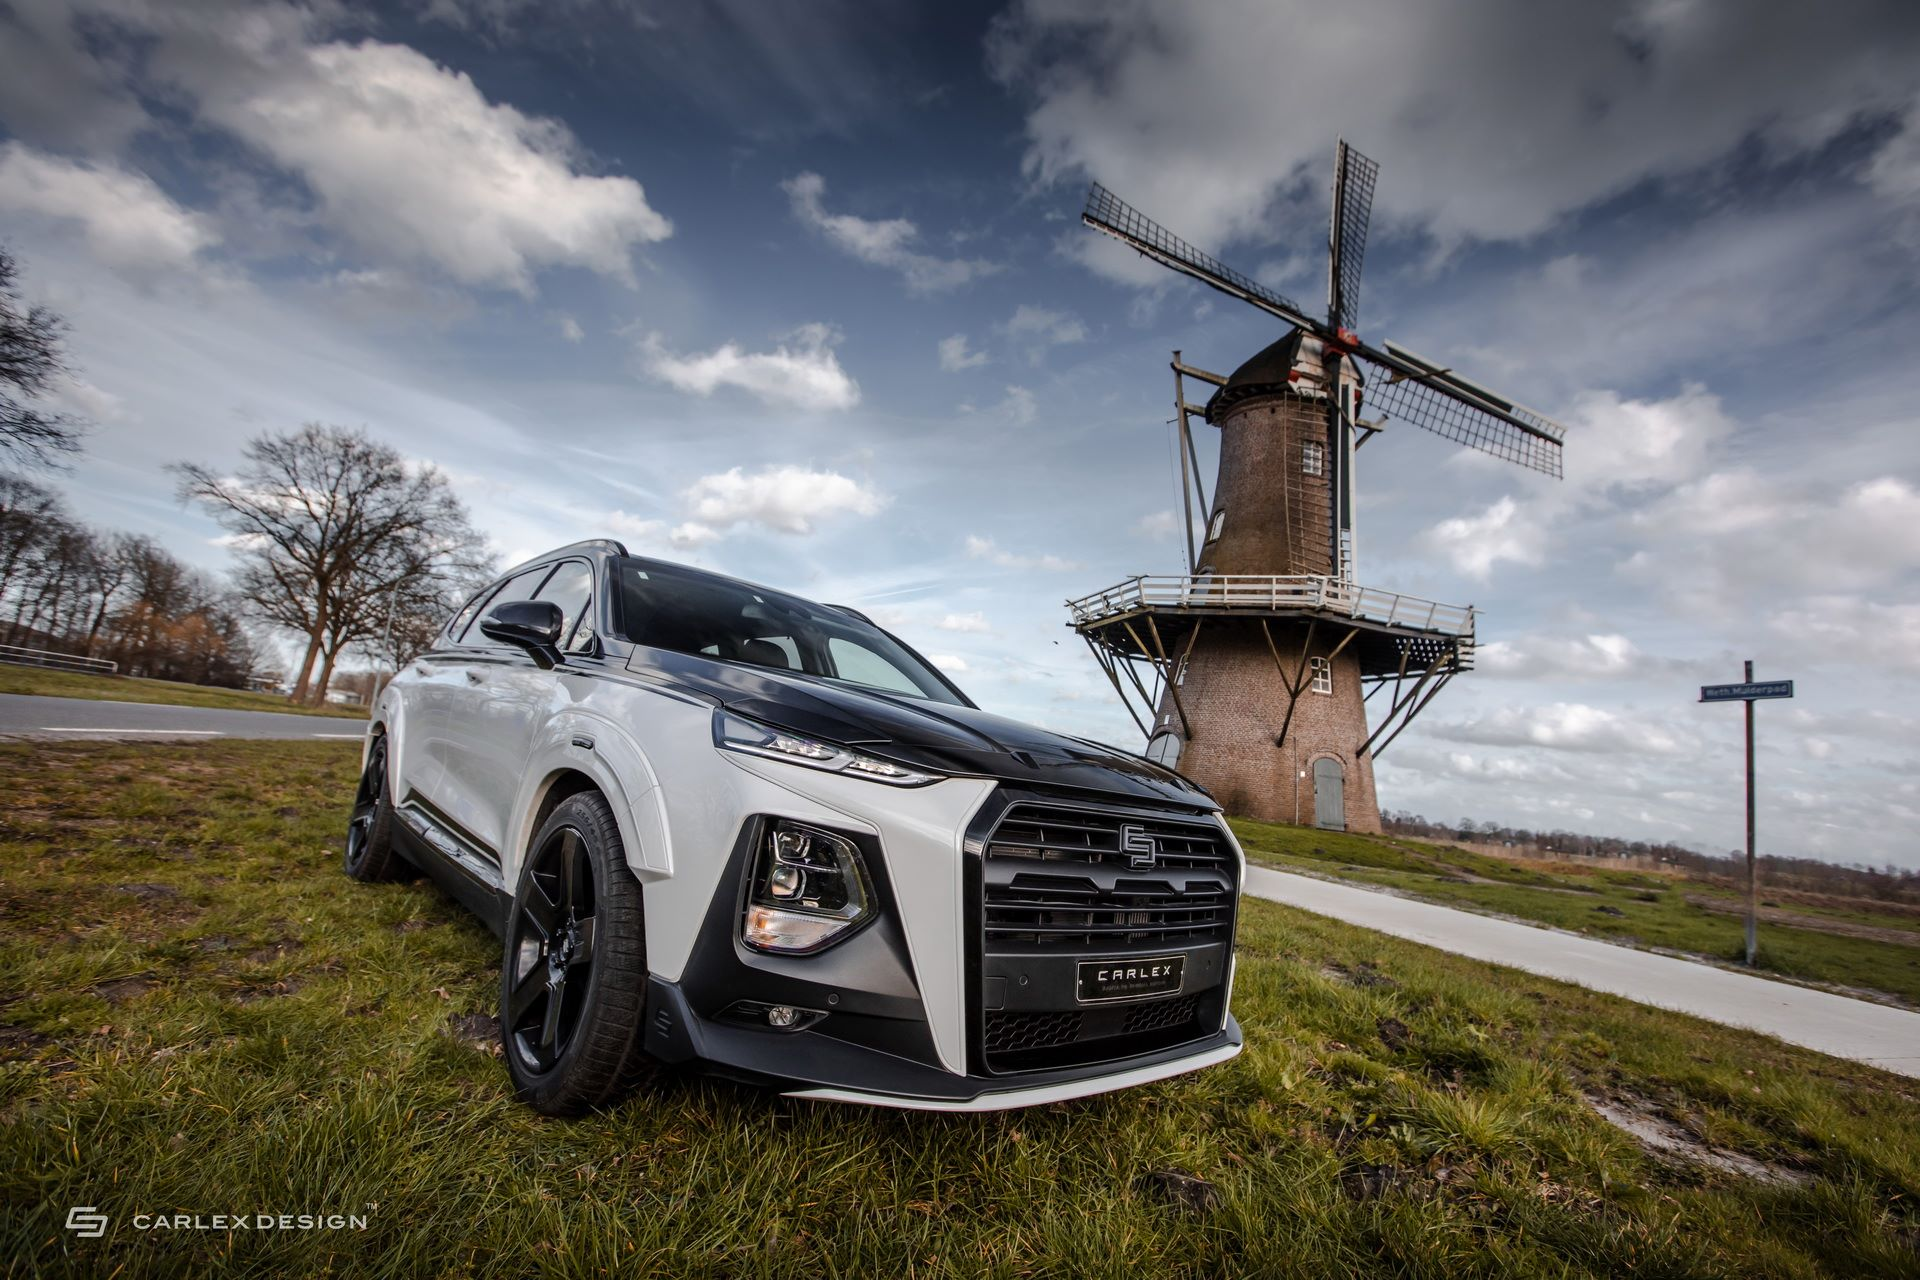 Hyundai-Santa-Fe-Urban-Edition-by-Carlex-Design-22